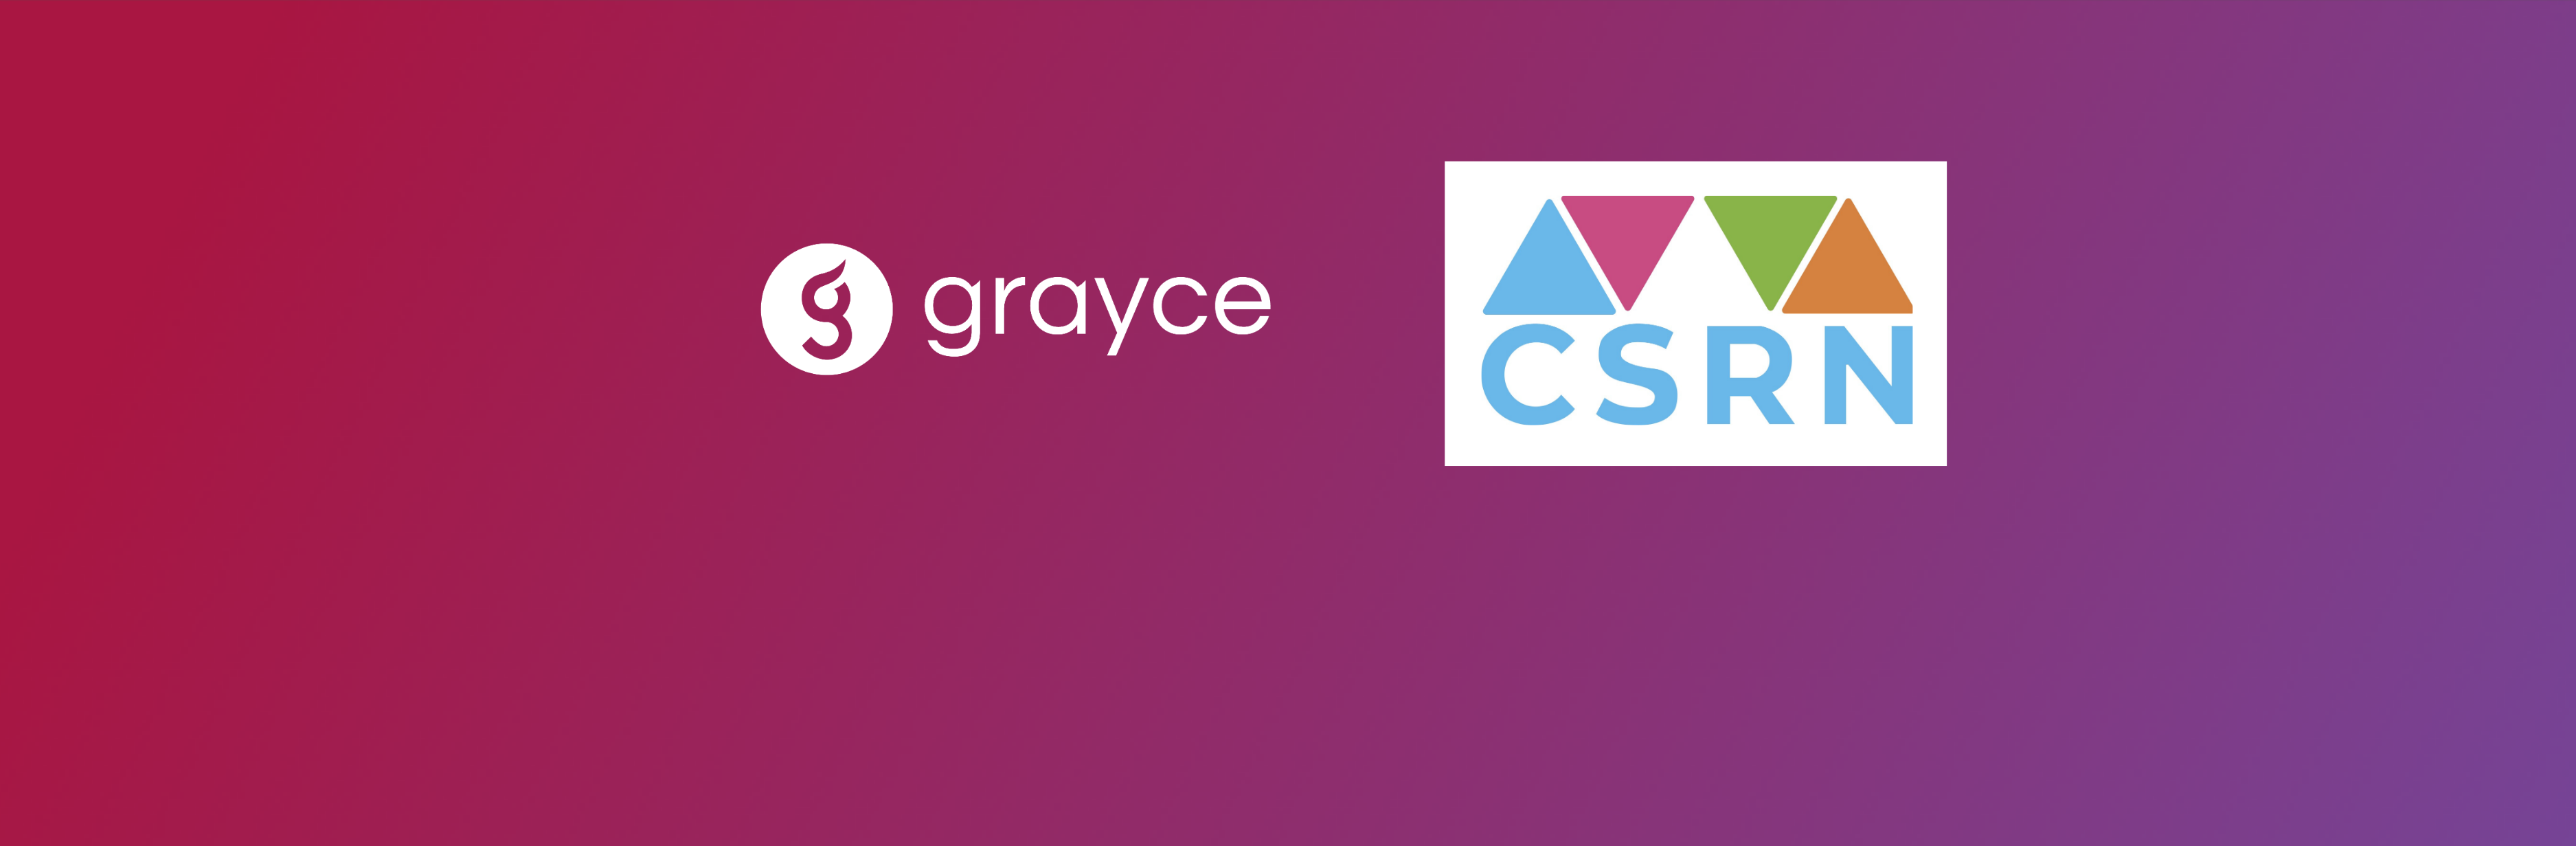 Grayce Announces Partnership with CSRN